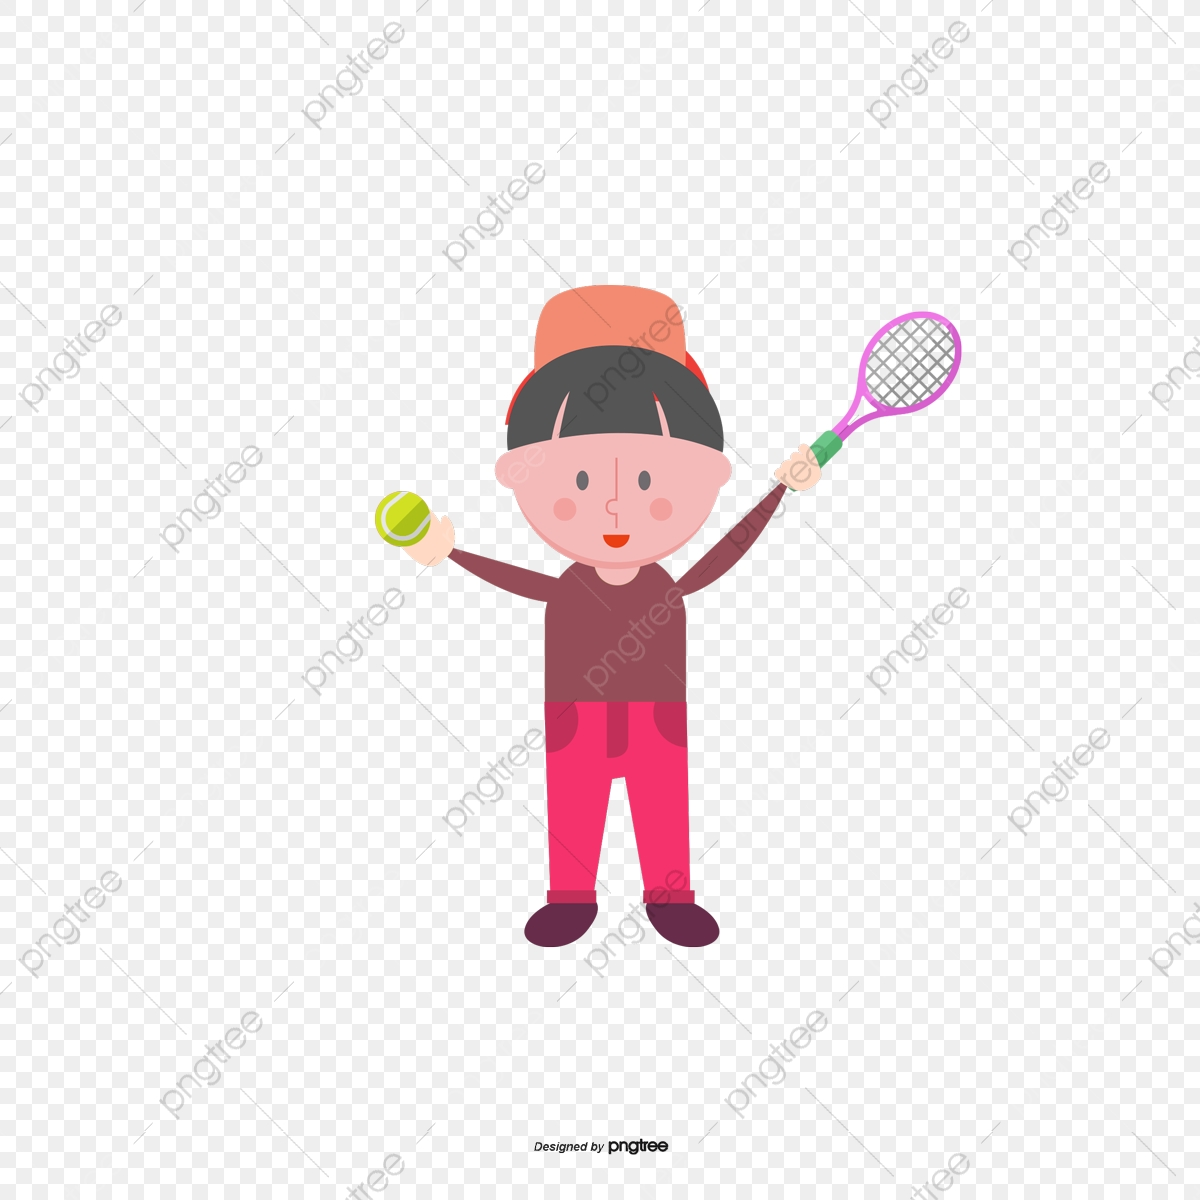 Google Image Result for  http://www.sparta7.com/media/wysiwyg/19880_tennis_for_newsletter_3.gif |  Idiomatic expressions, Tennis crafts, Tennis life